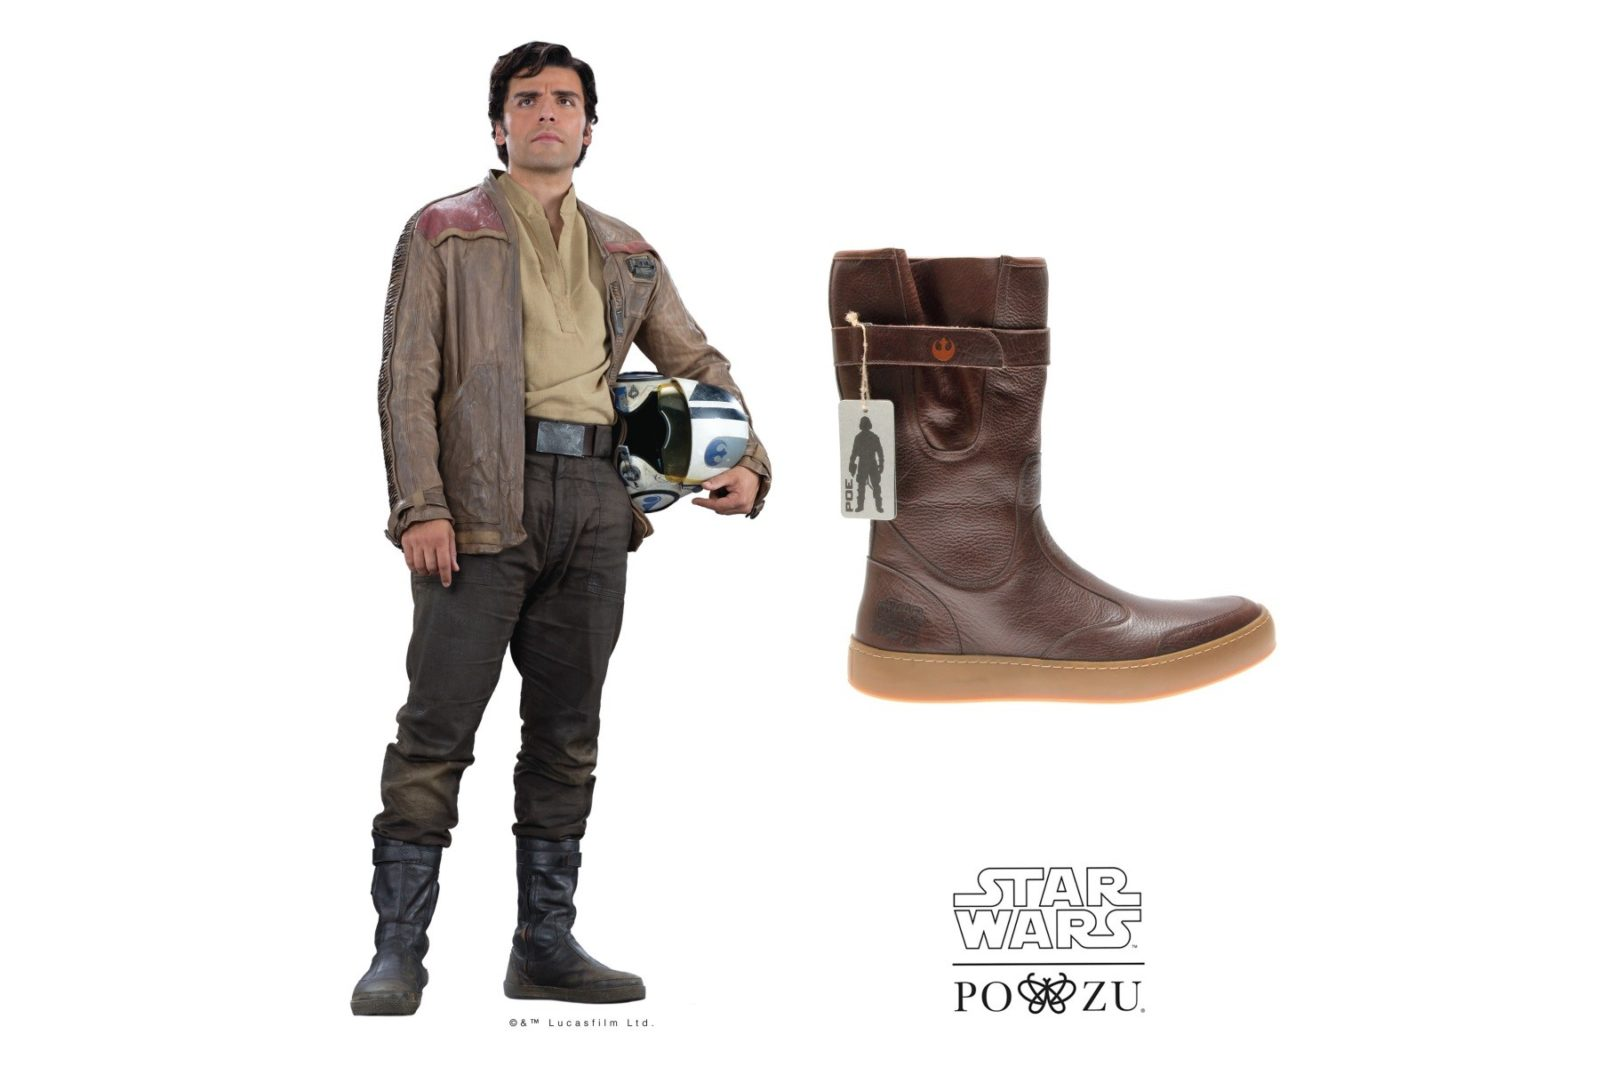 Po-Zu x Star Wars Poe Dameron boot preview!